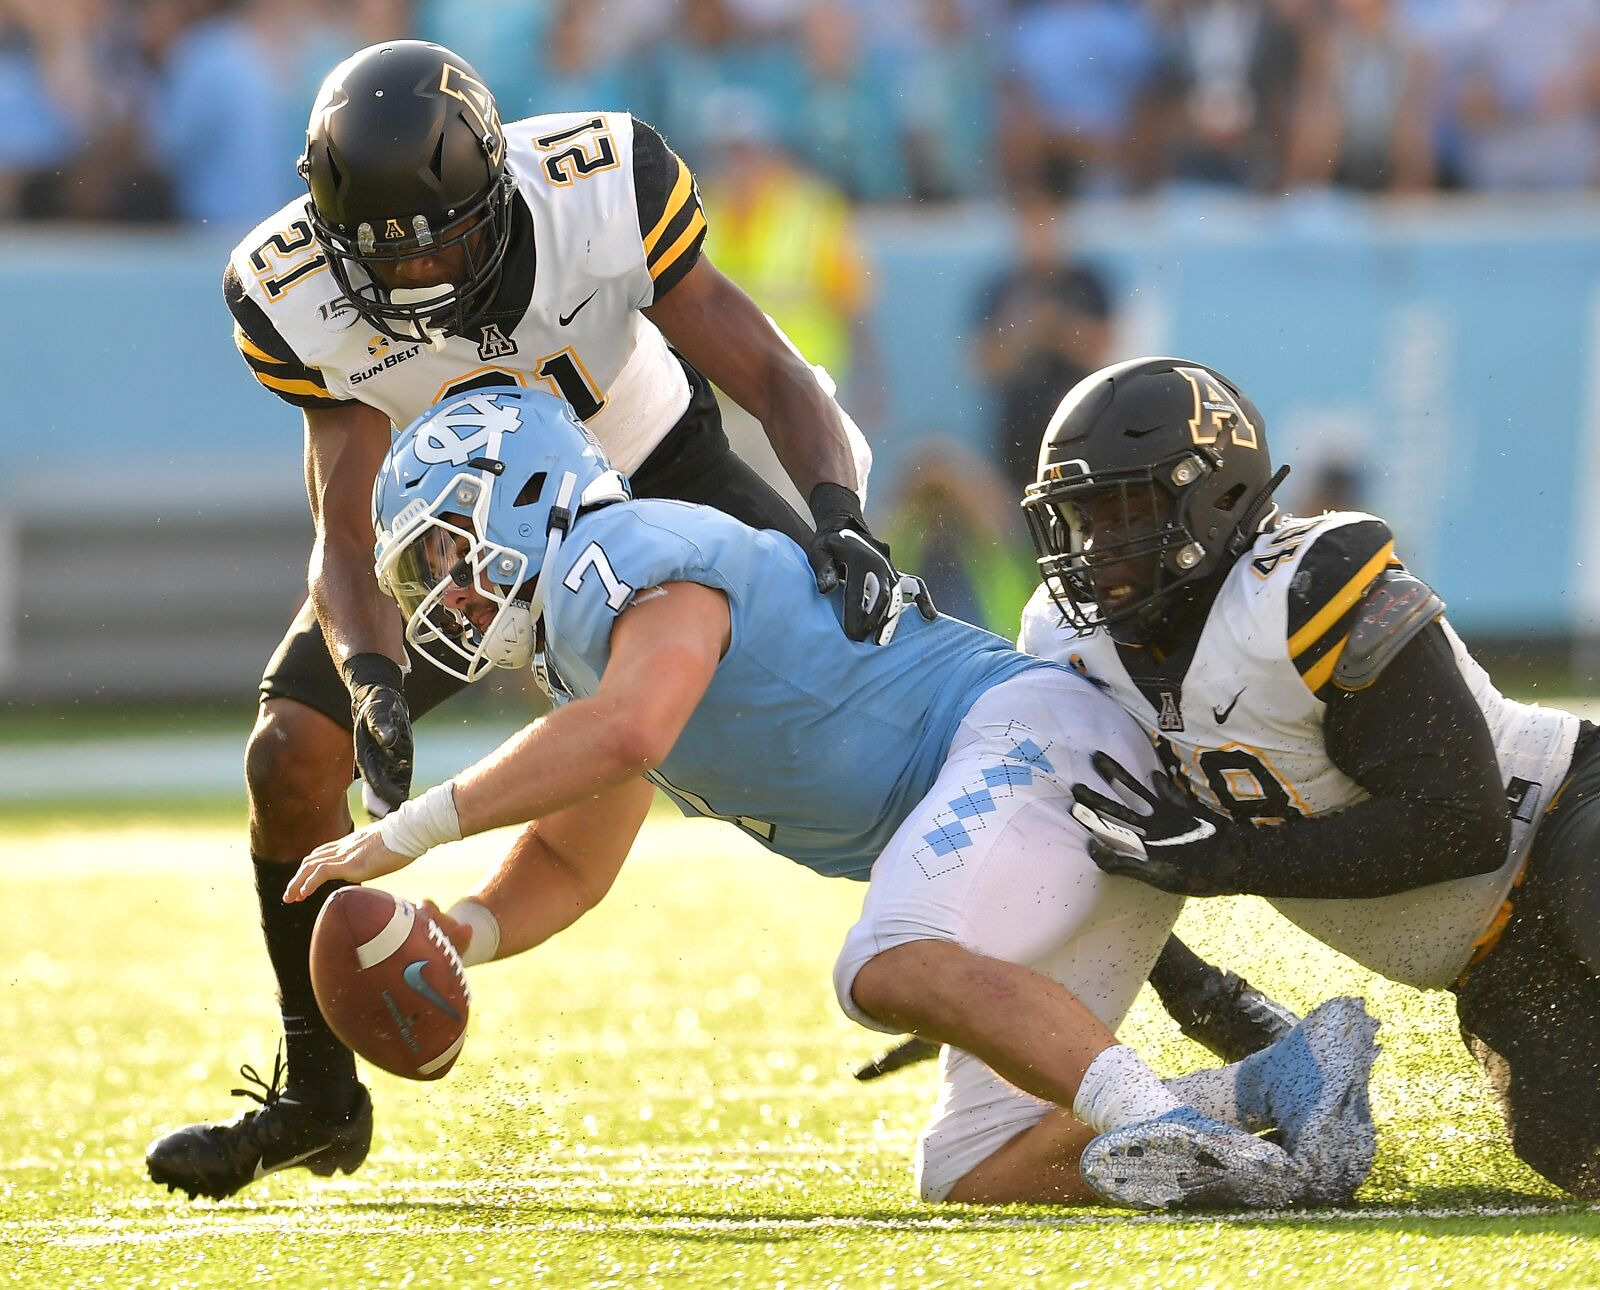 Following UNC Football's 34-31 loss to App State, are the Tar Heels in trouble?